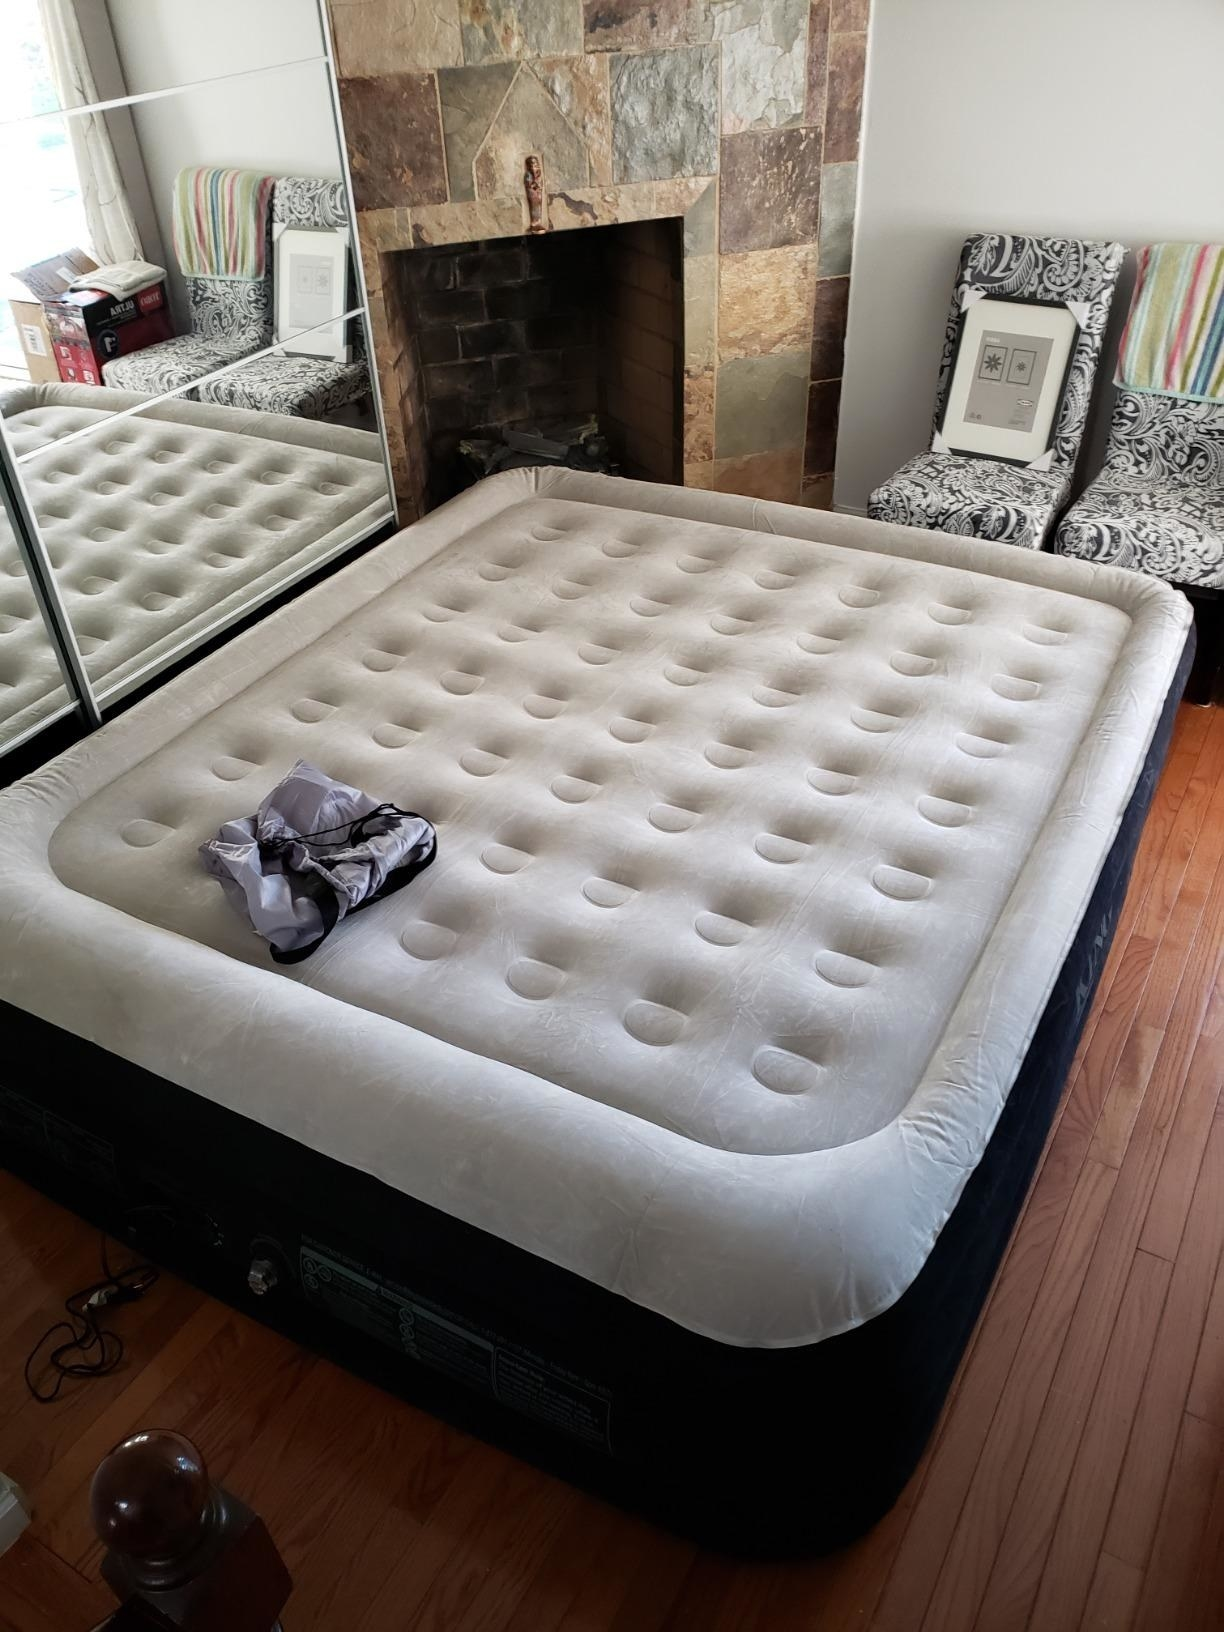 A reviewer showing the mattress in their room